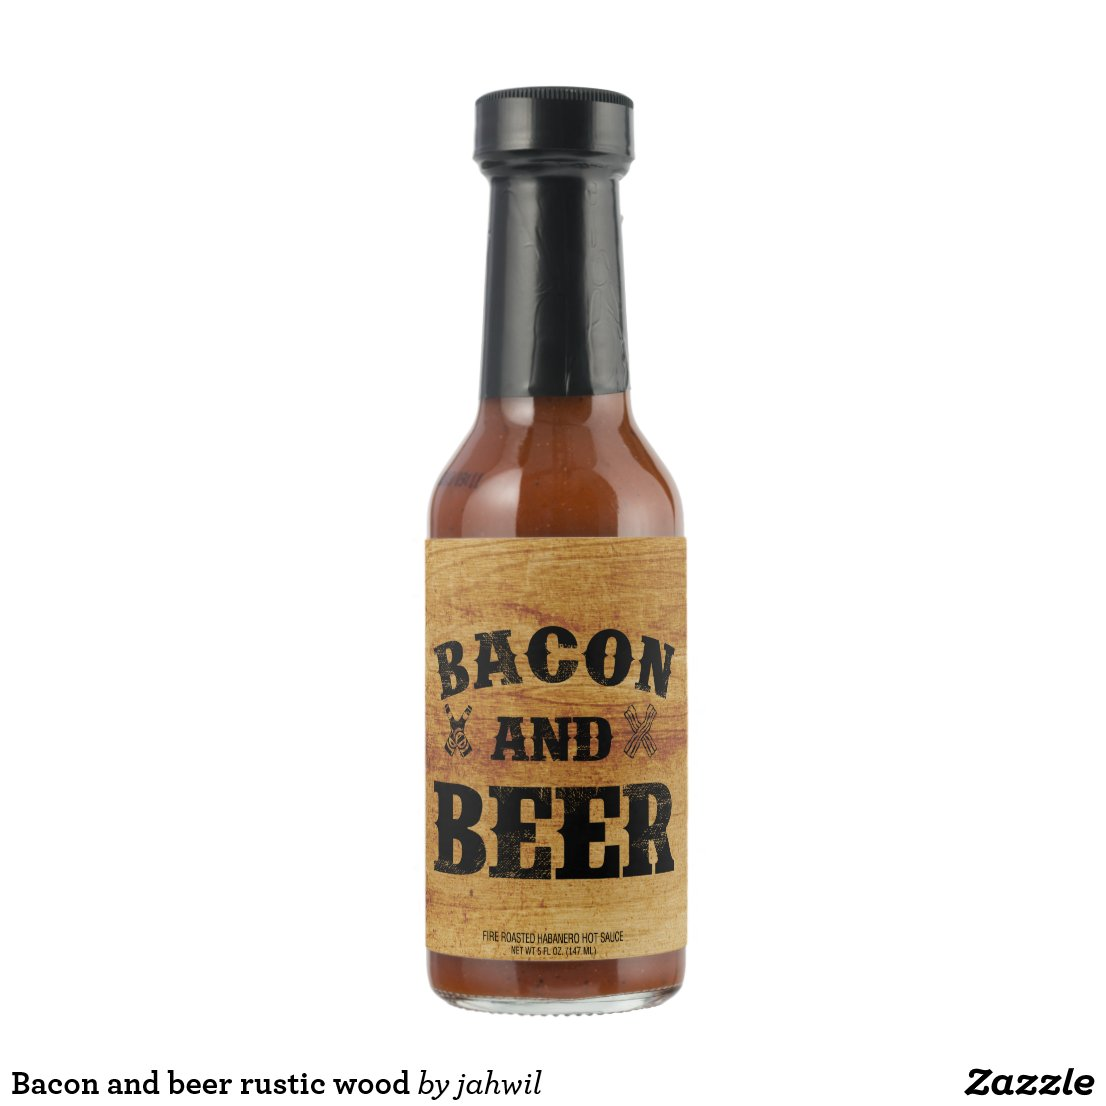 Bacon and beer rustic wood